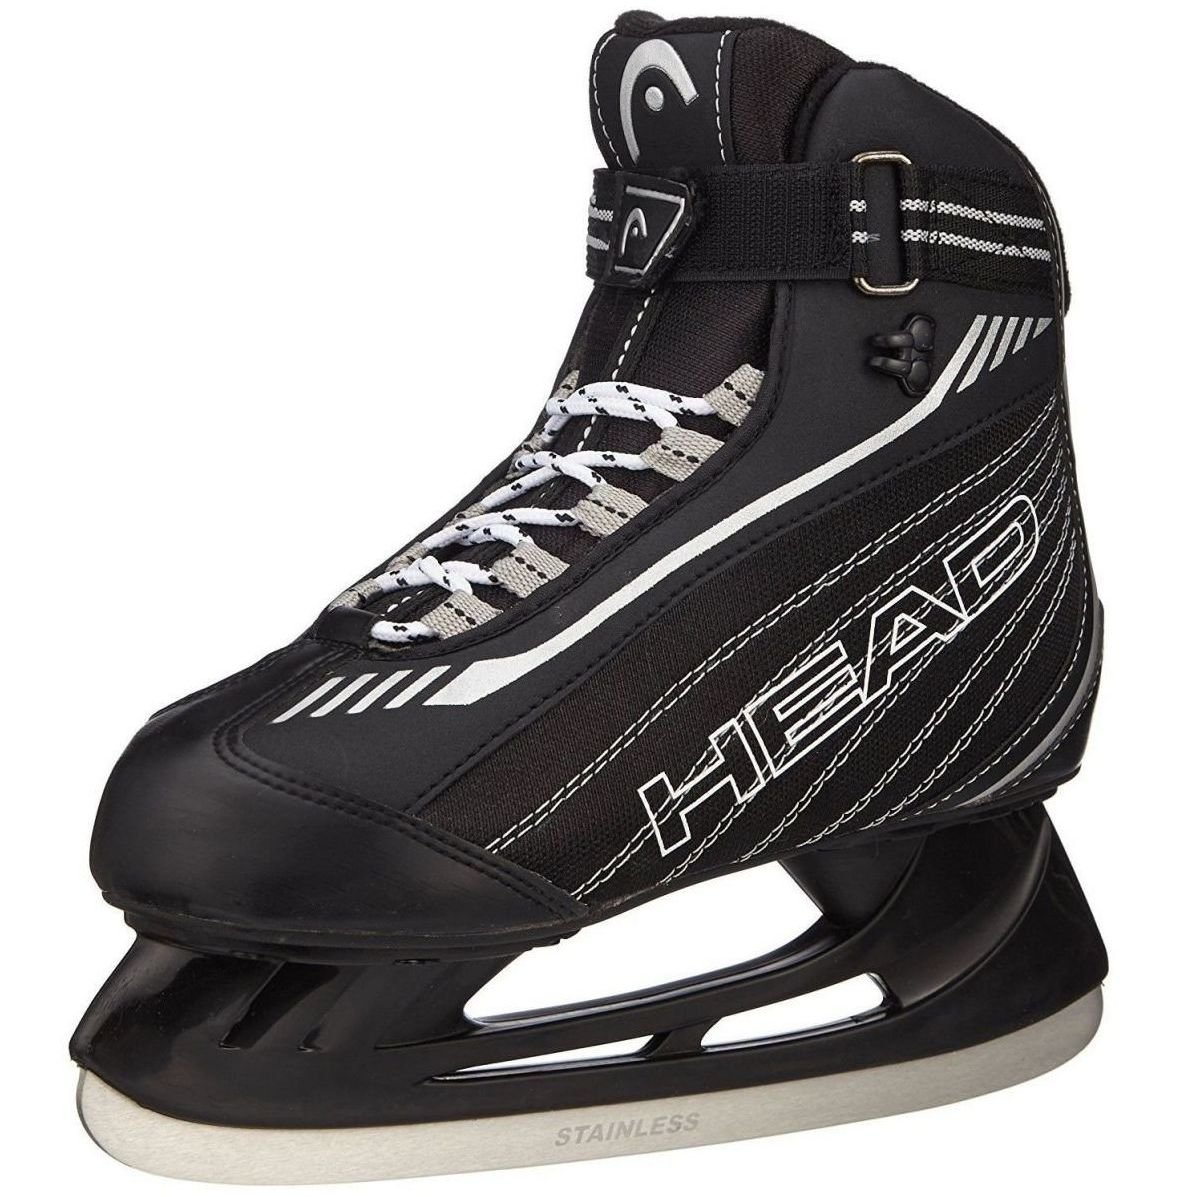 patines hockey sobre hielo head joy